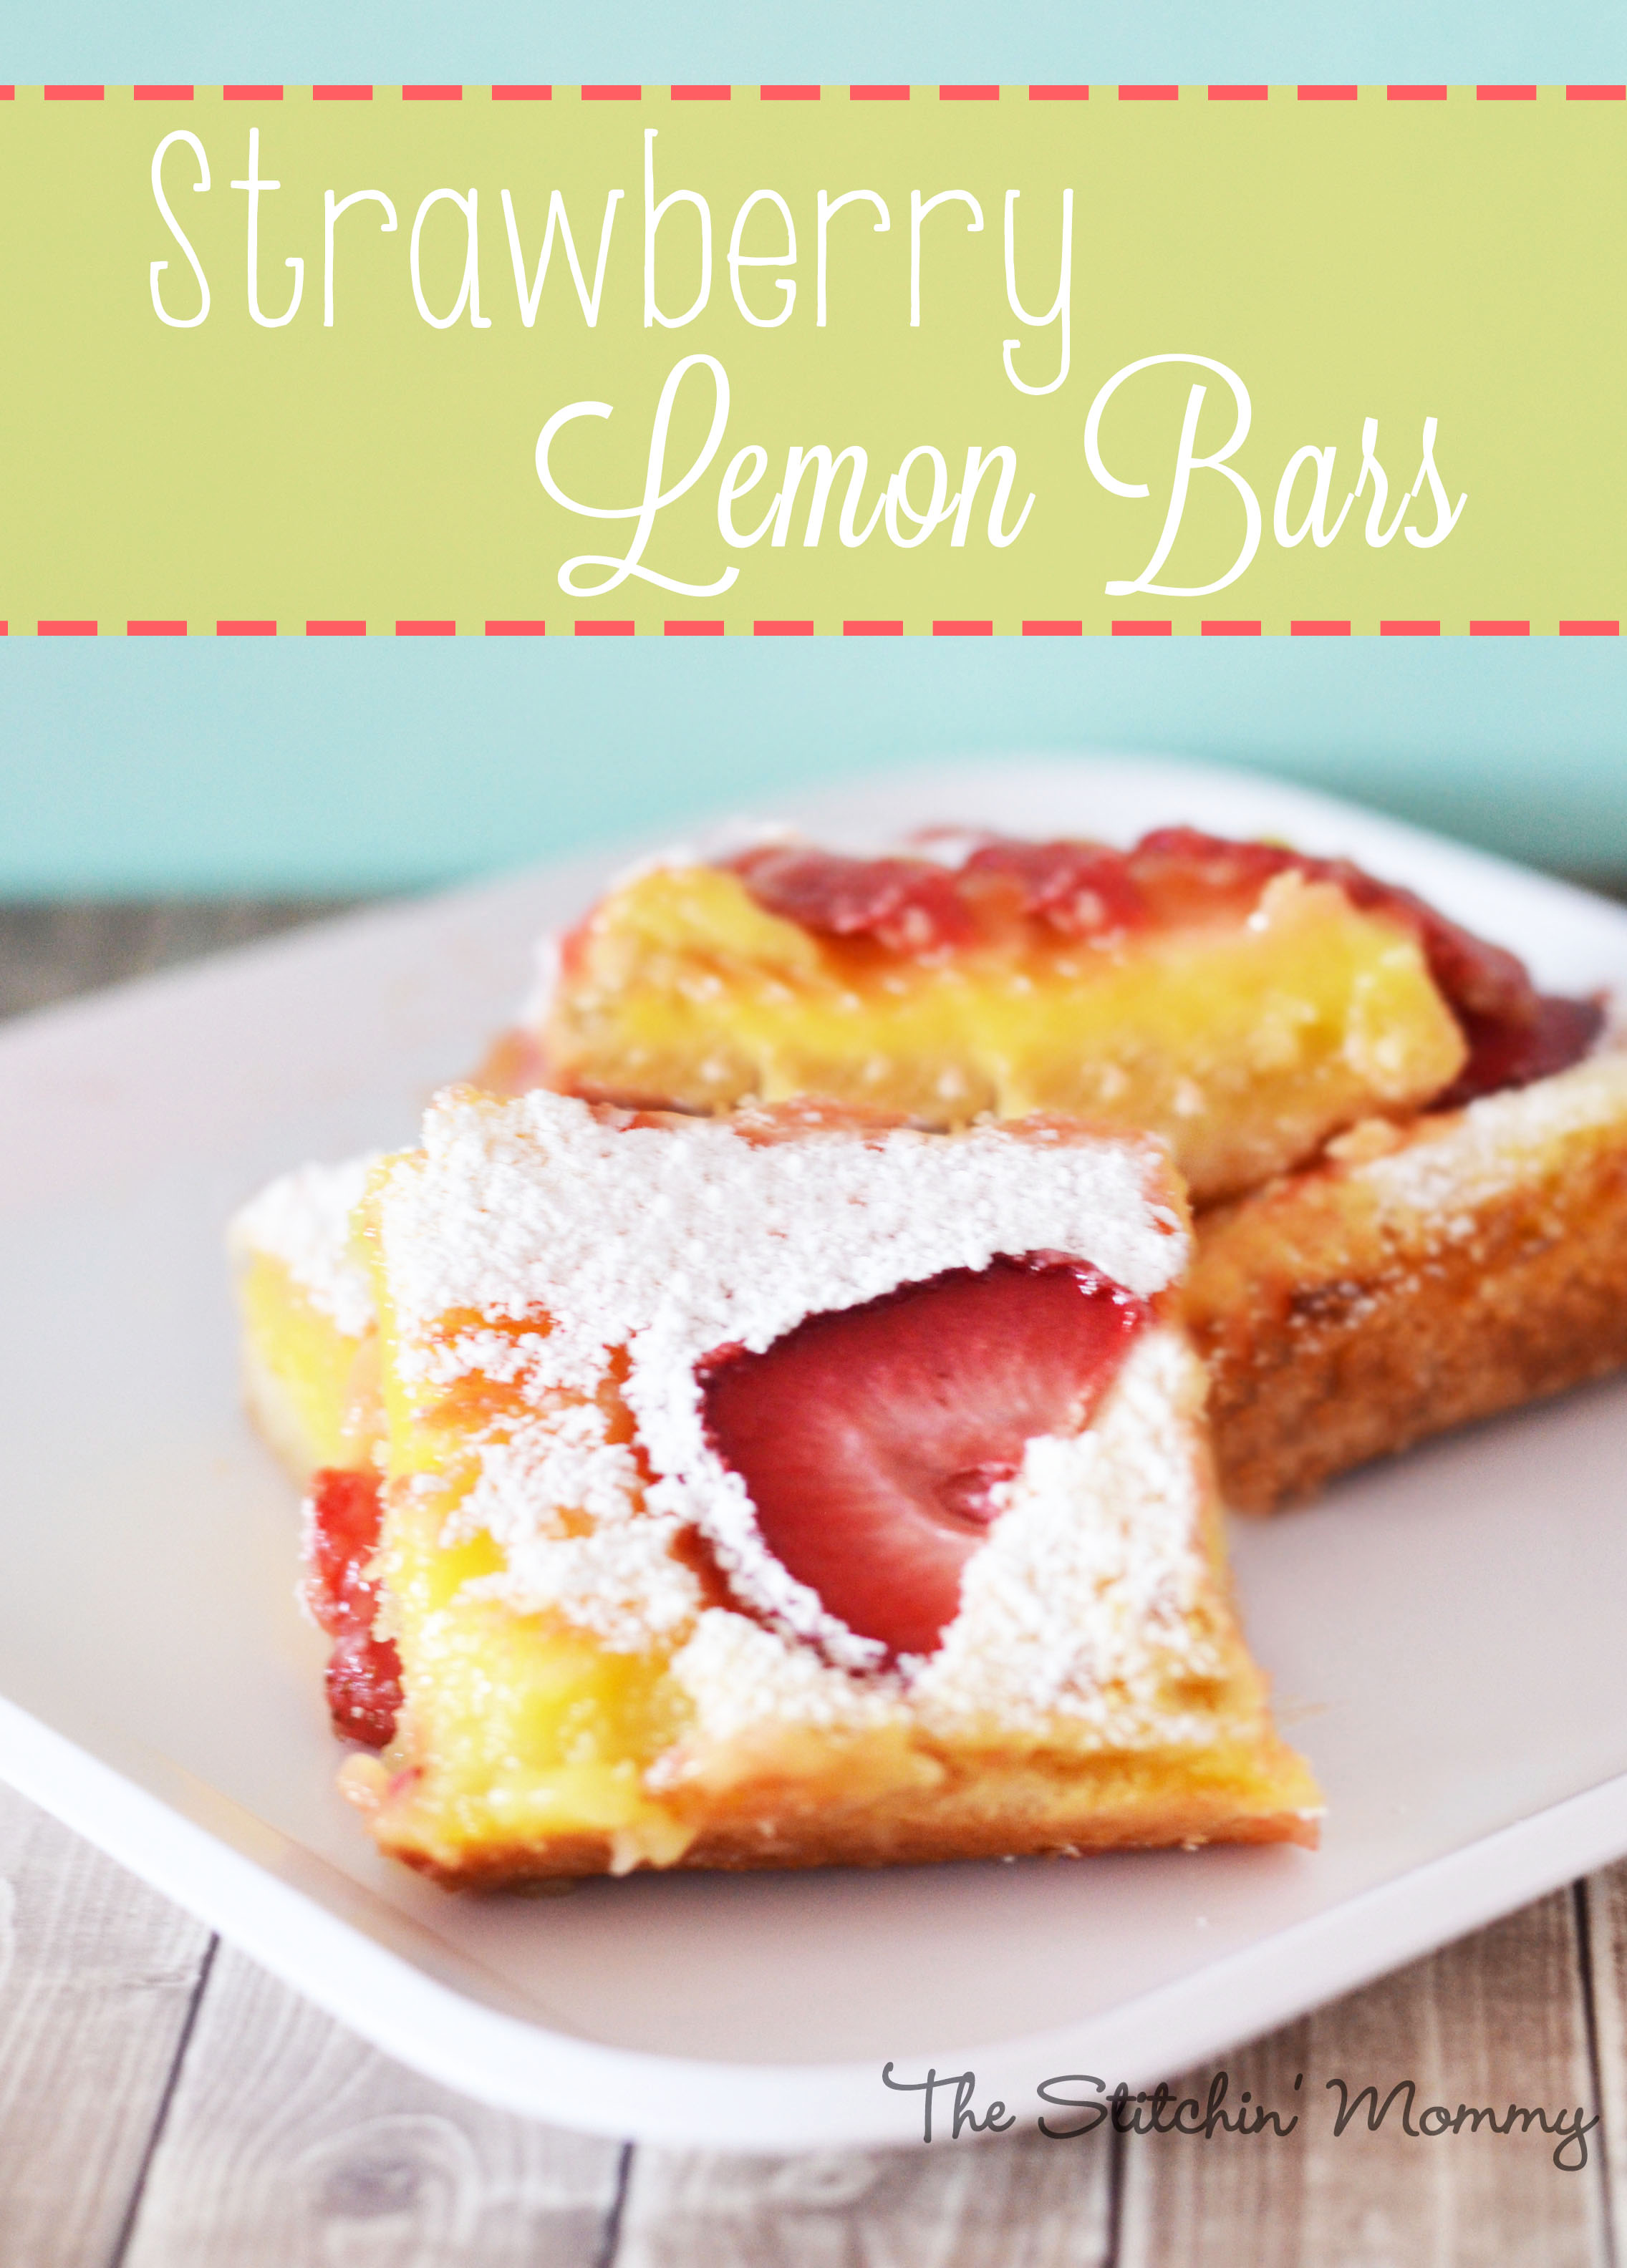 Strawberry Lemon Bars www.thestitchinmommy.com